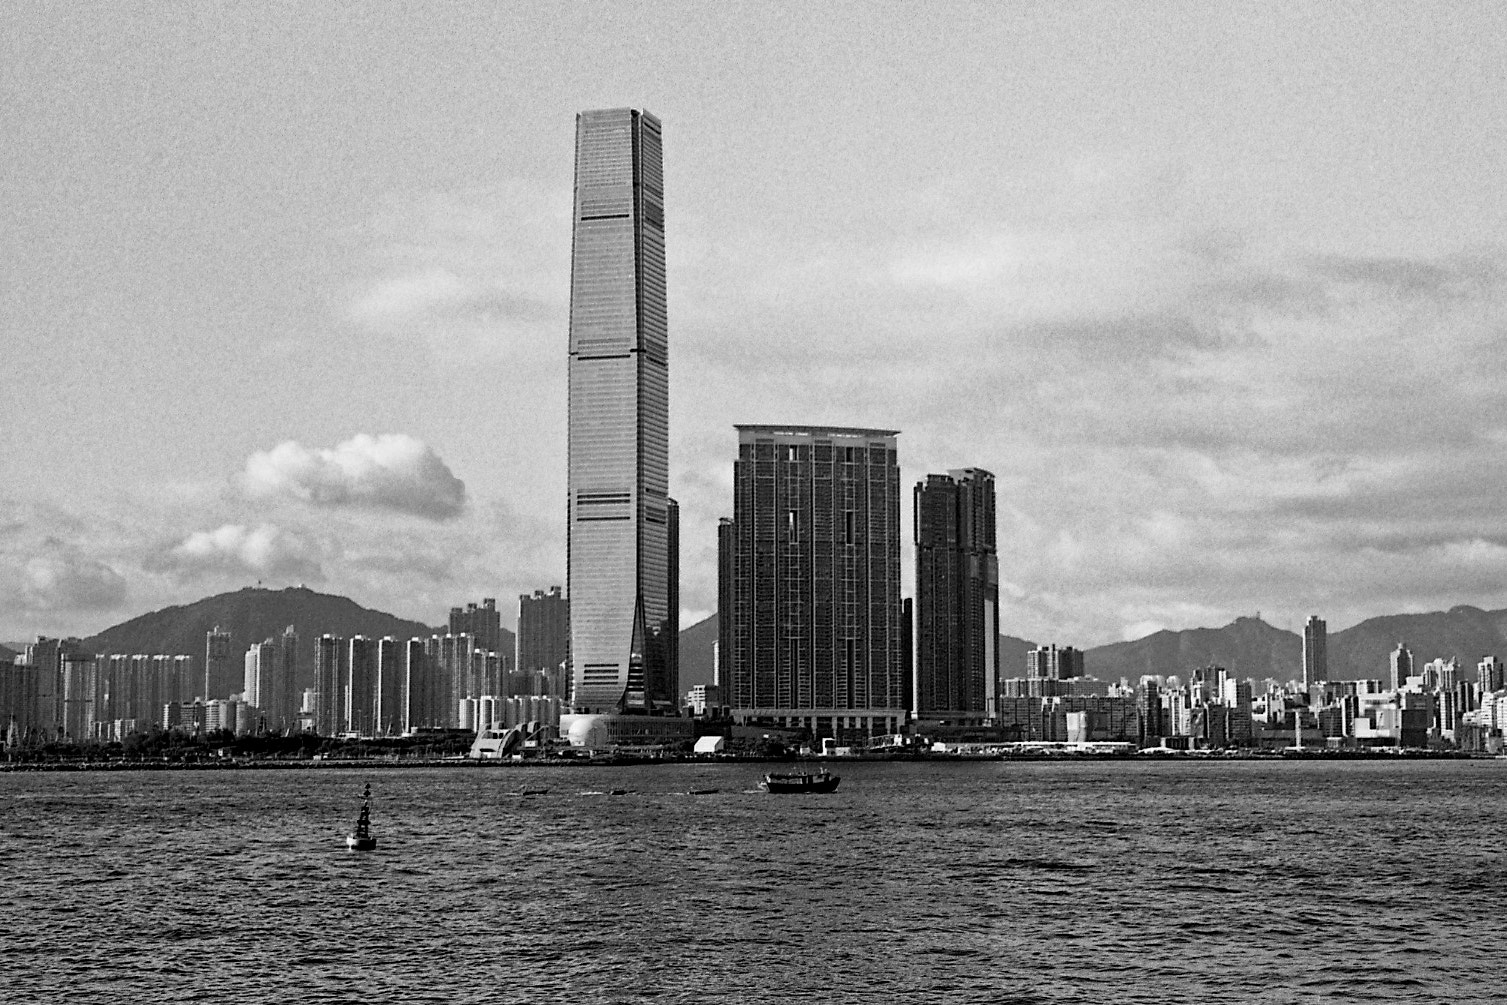 Photograph New landmark in Hong Kong by Hurkyl  on 500px